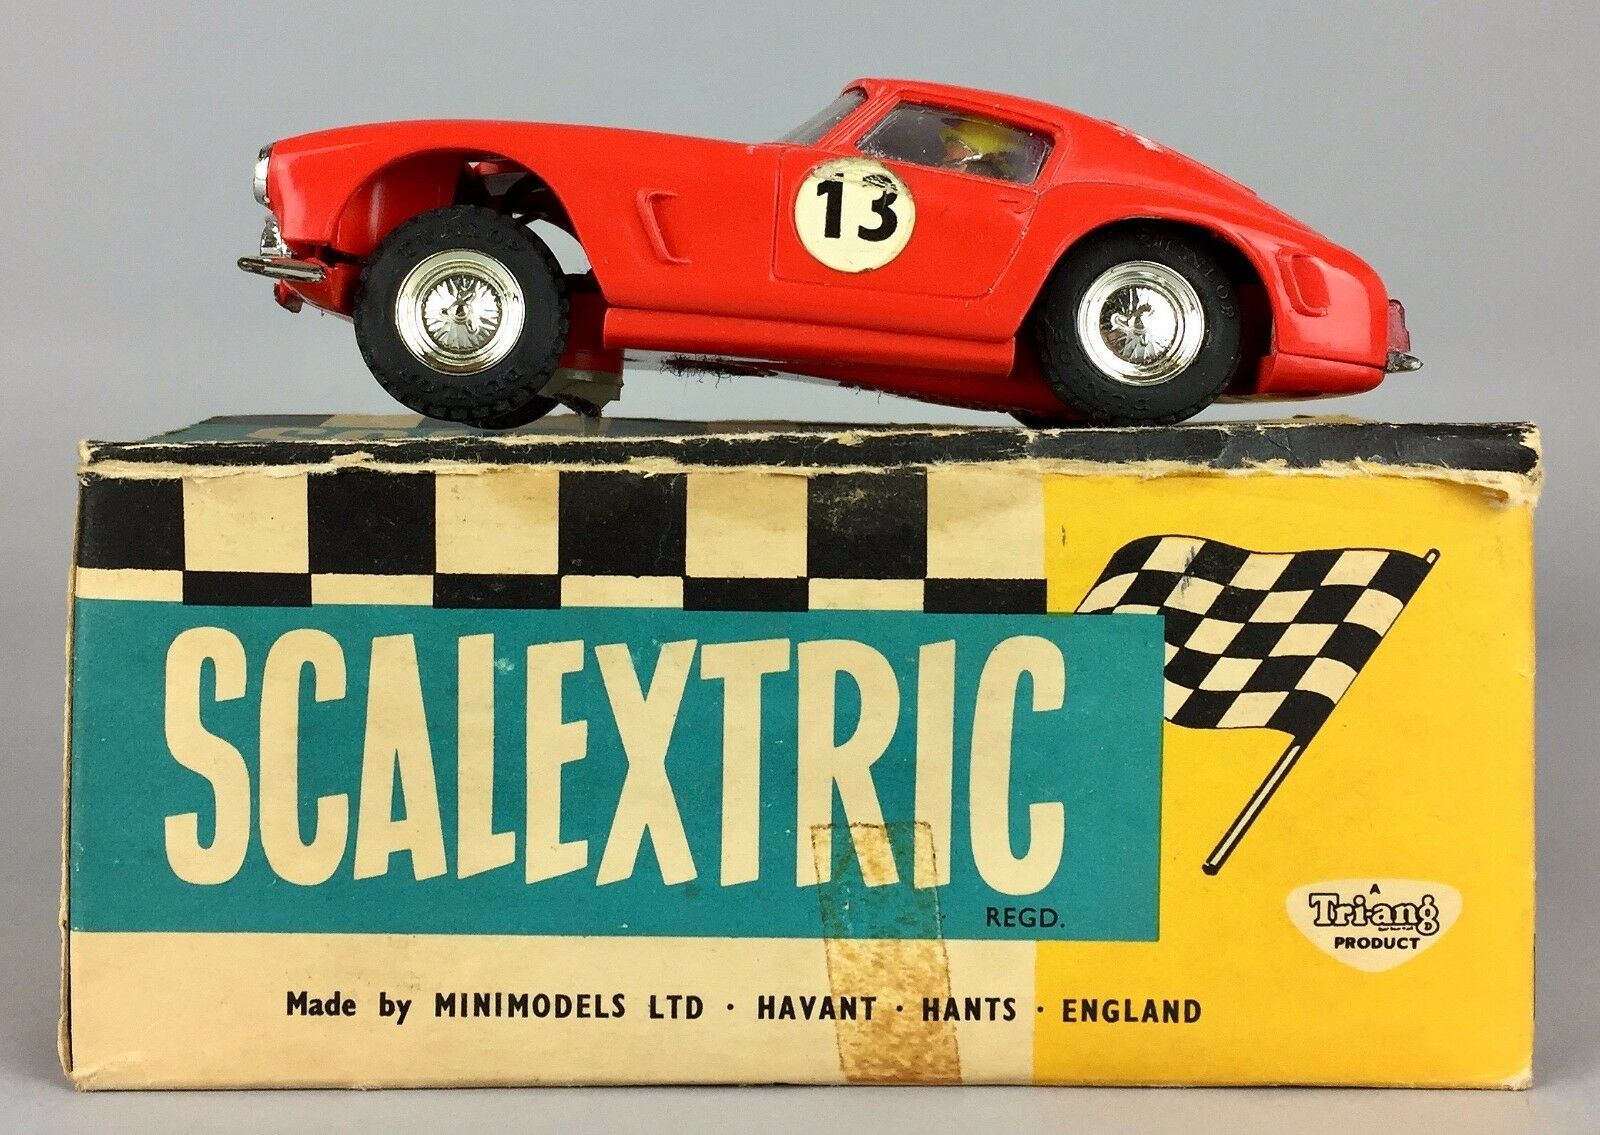 VINTAGE TRIANG SCALEXTRIC -FERRARI GT- ELECTRIC MINIMODELS RACING CAR E 4 -BOXED